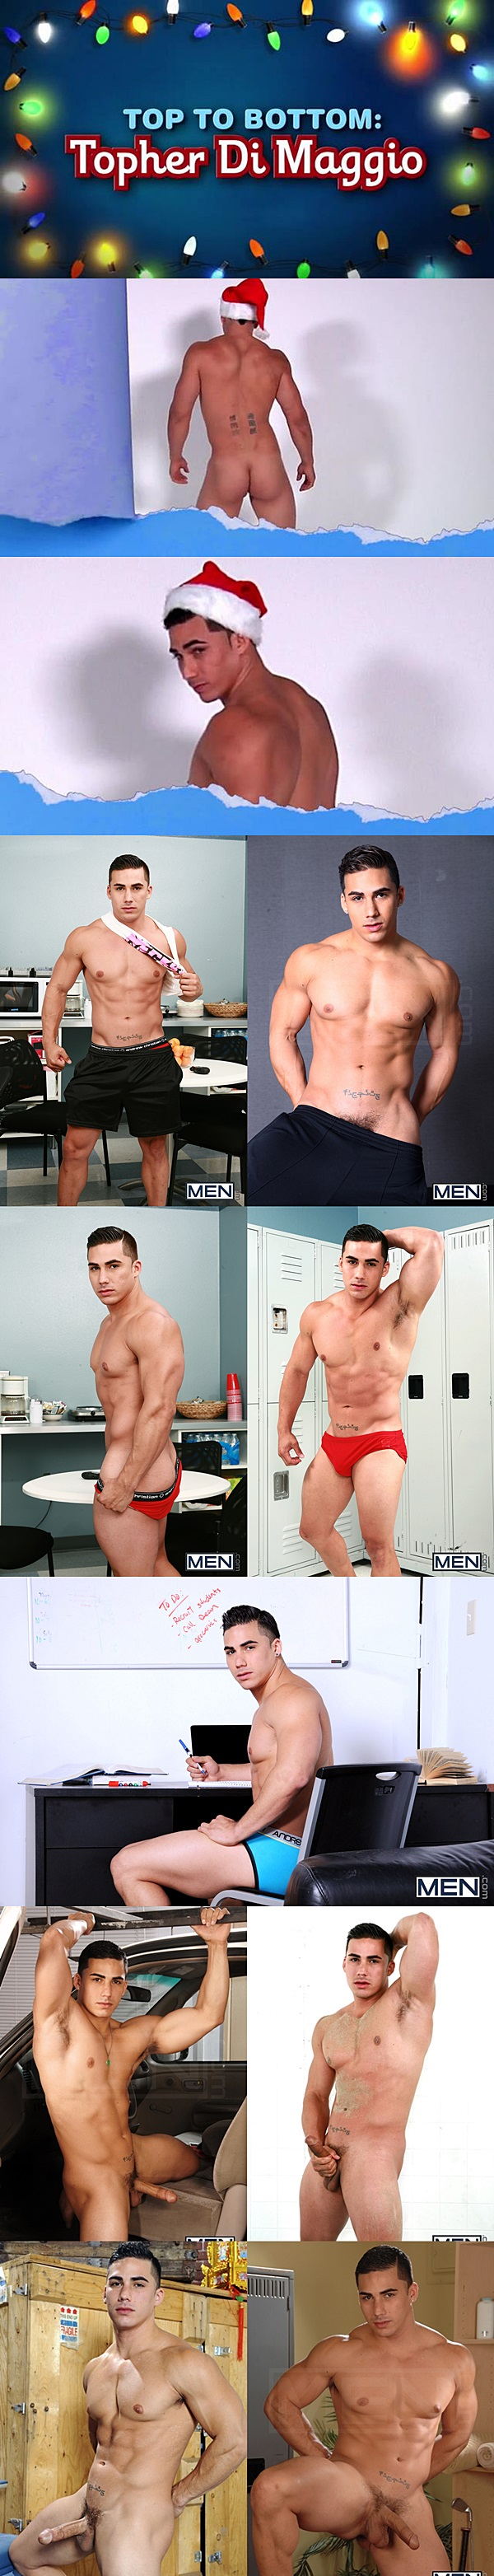 Top only star Topher DiMaggio gets his virgin ass popped up in Top to Bottom Part 6 at Men 01